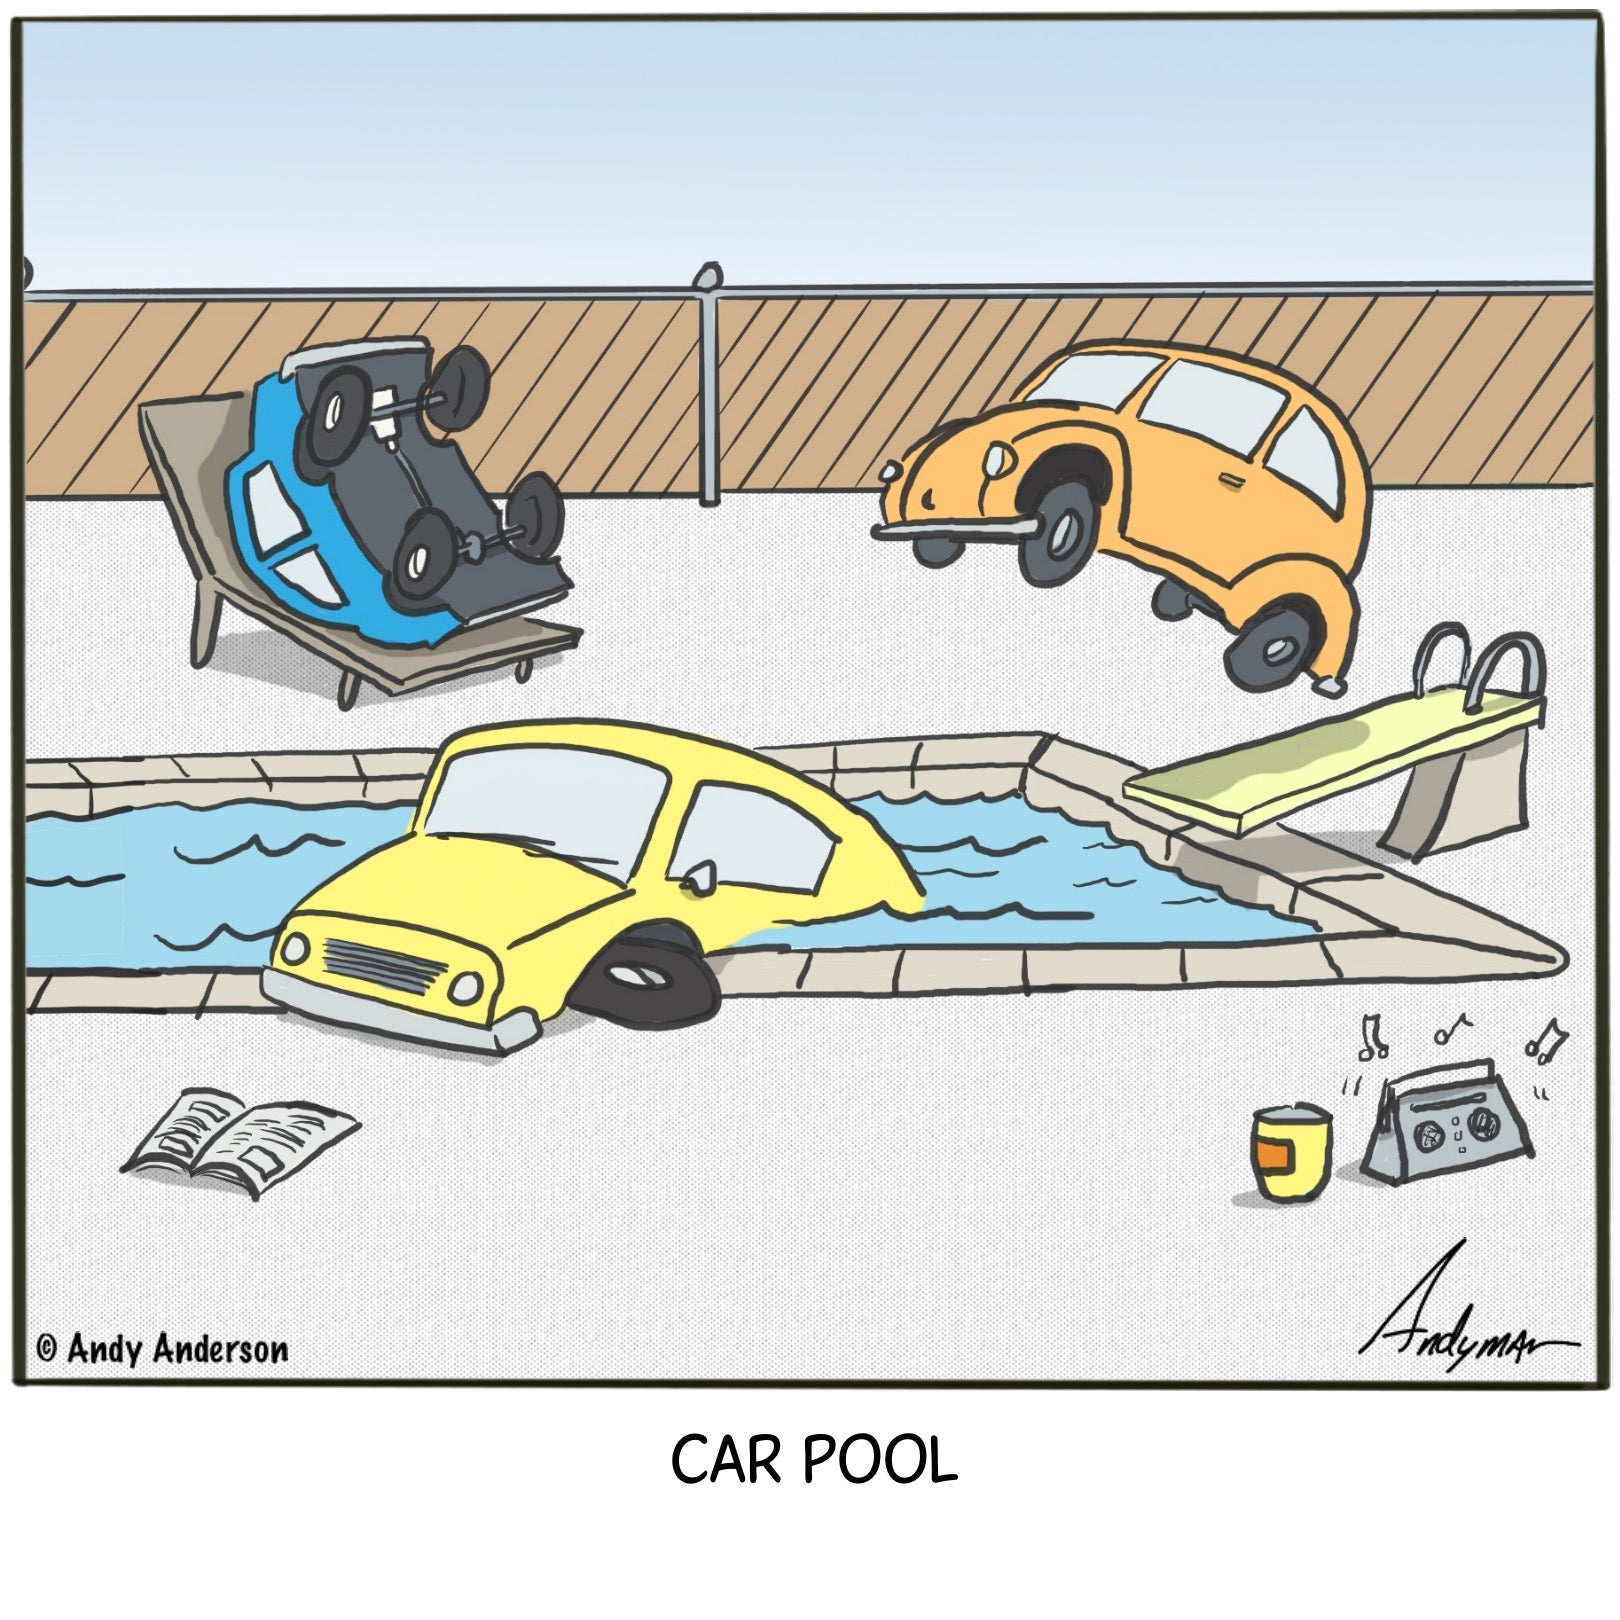 Car pool cartoon by Andy Anderson